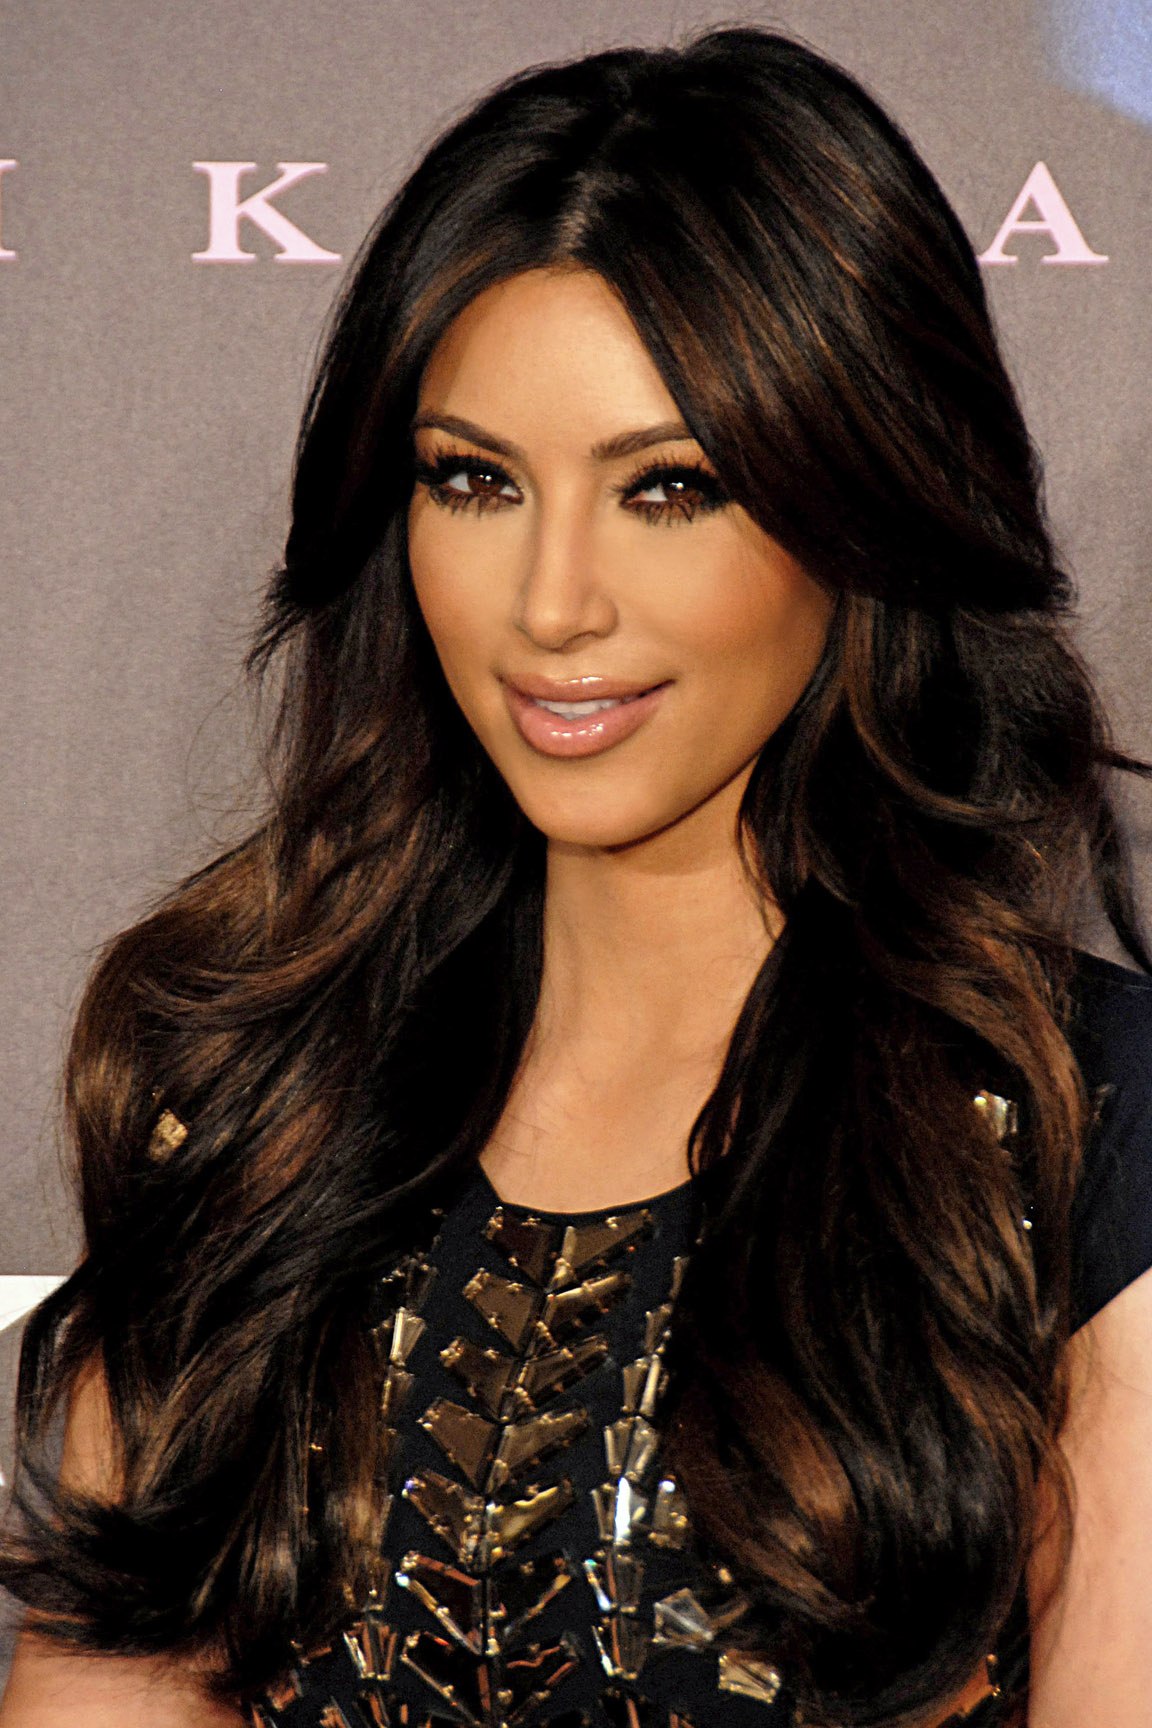 Description kim kardashian 2011